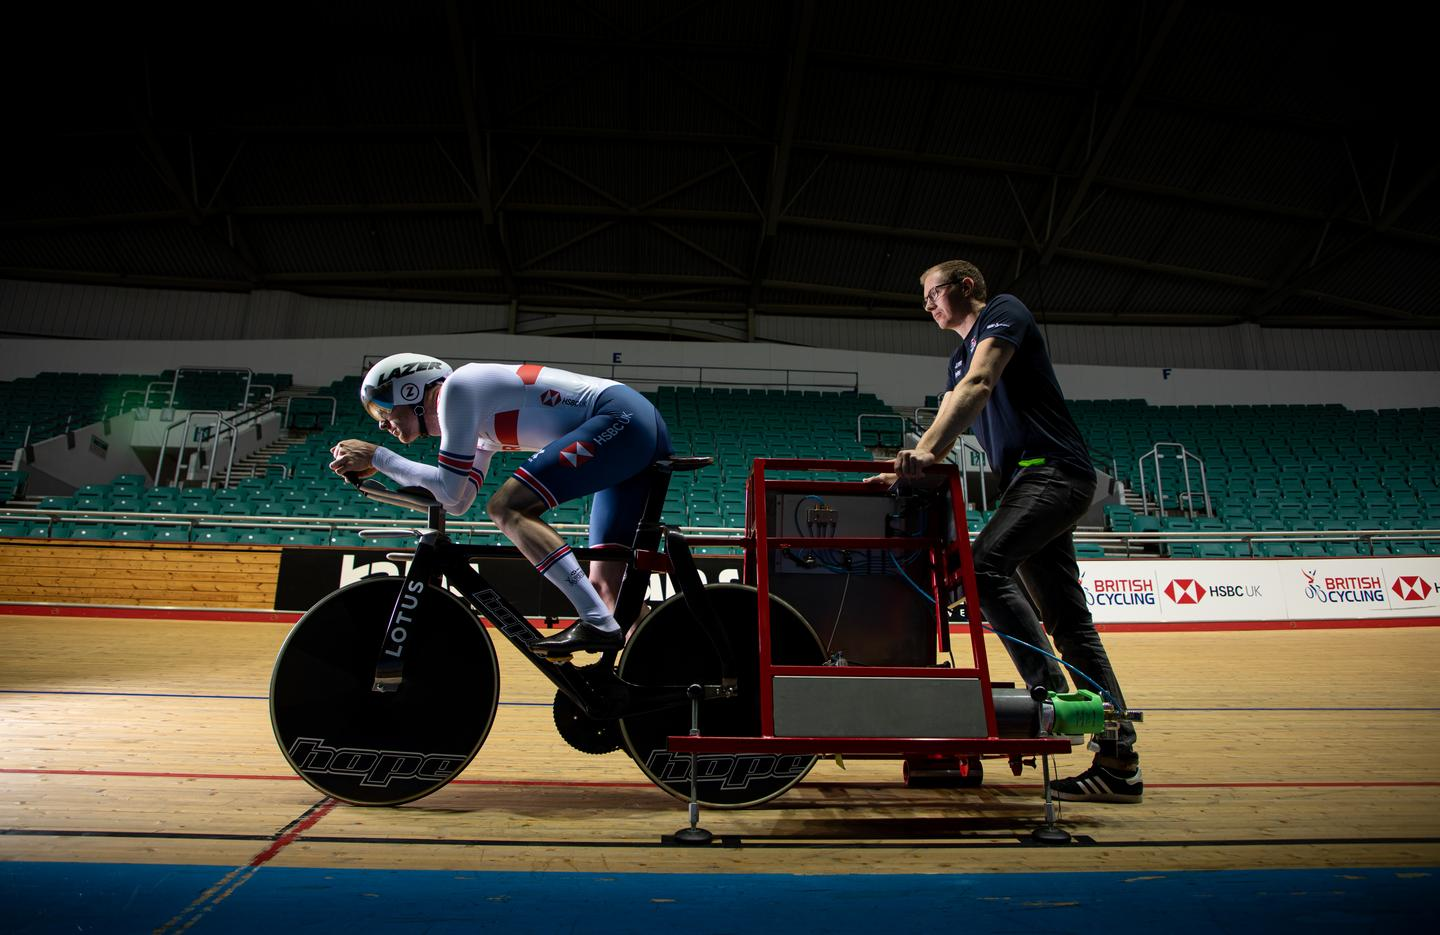 Lotus aims for cycling gold with new track bike